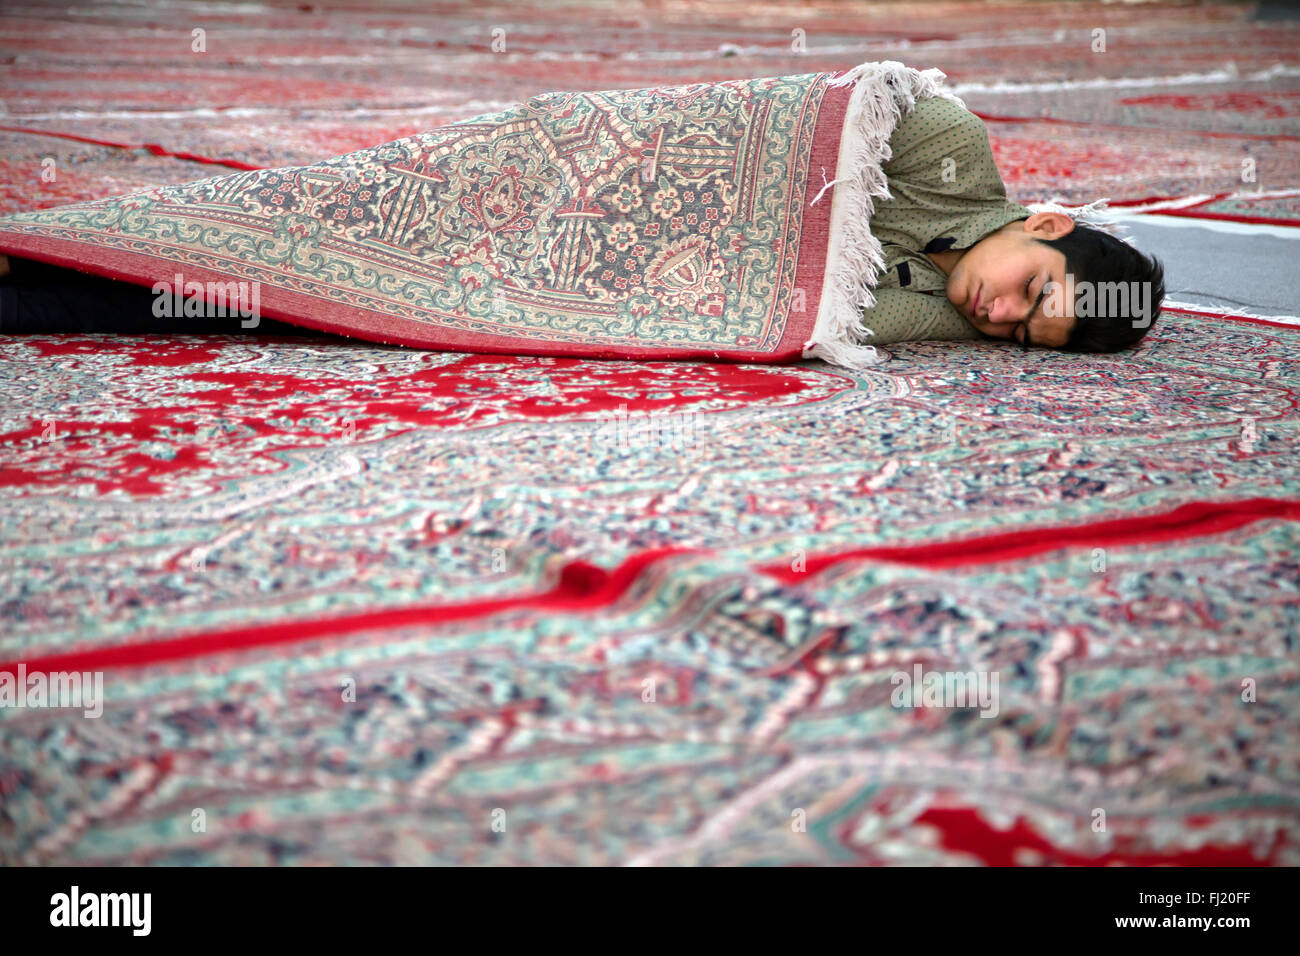 Man sleeping in Iran in the Mausoleum of Ayatollah Khomeini, south of Tehran - Stock Image